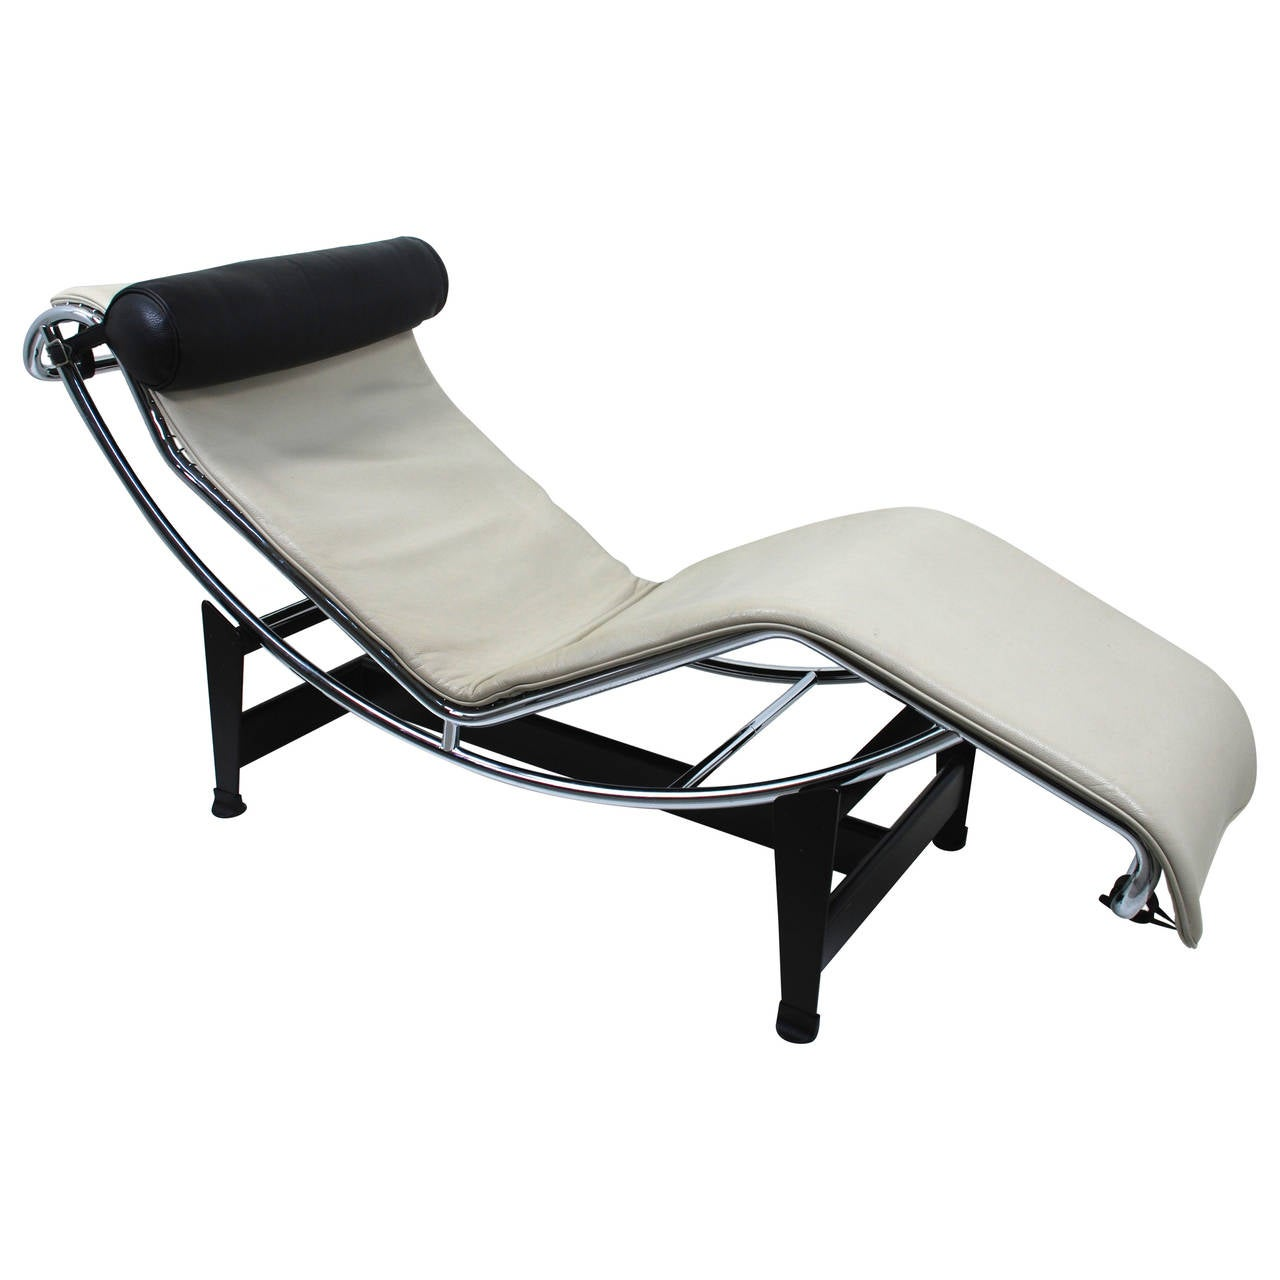 Le corbusier 39 lc 4 39 chaise longue 1928 at 1stdibs for Chaise corbusier